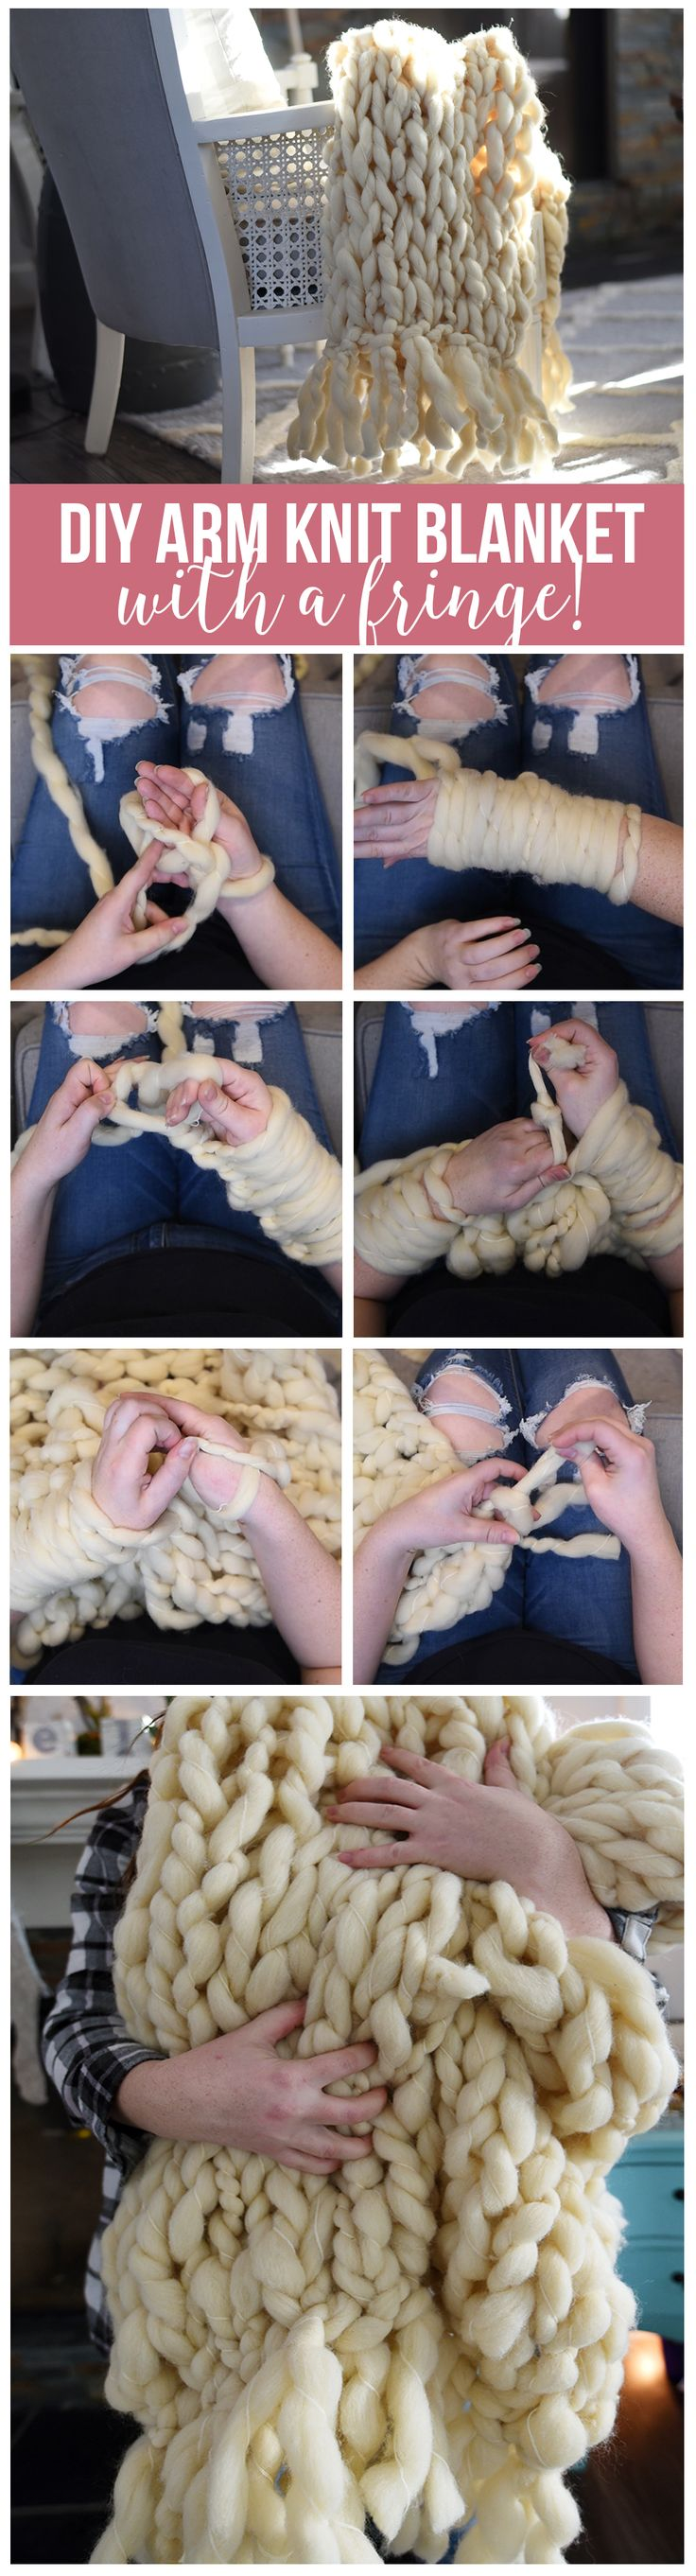 How to make an arm knit blanket with a fringe